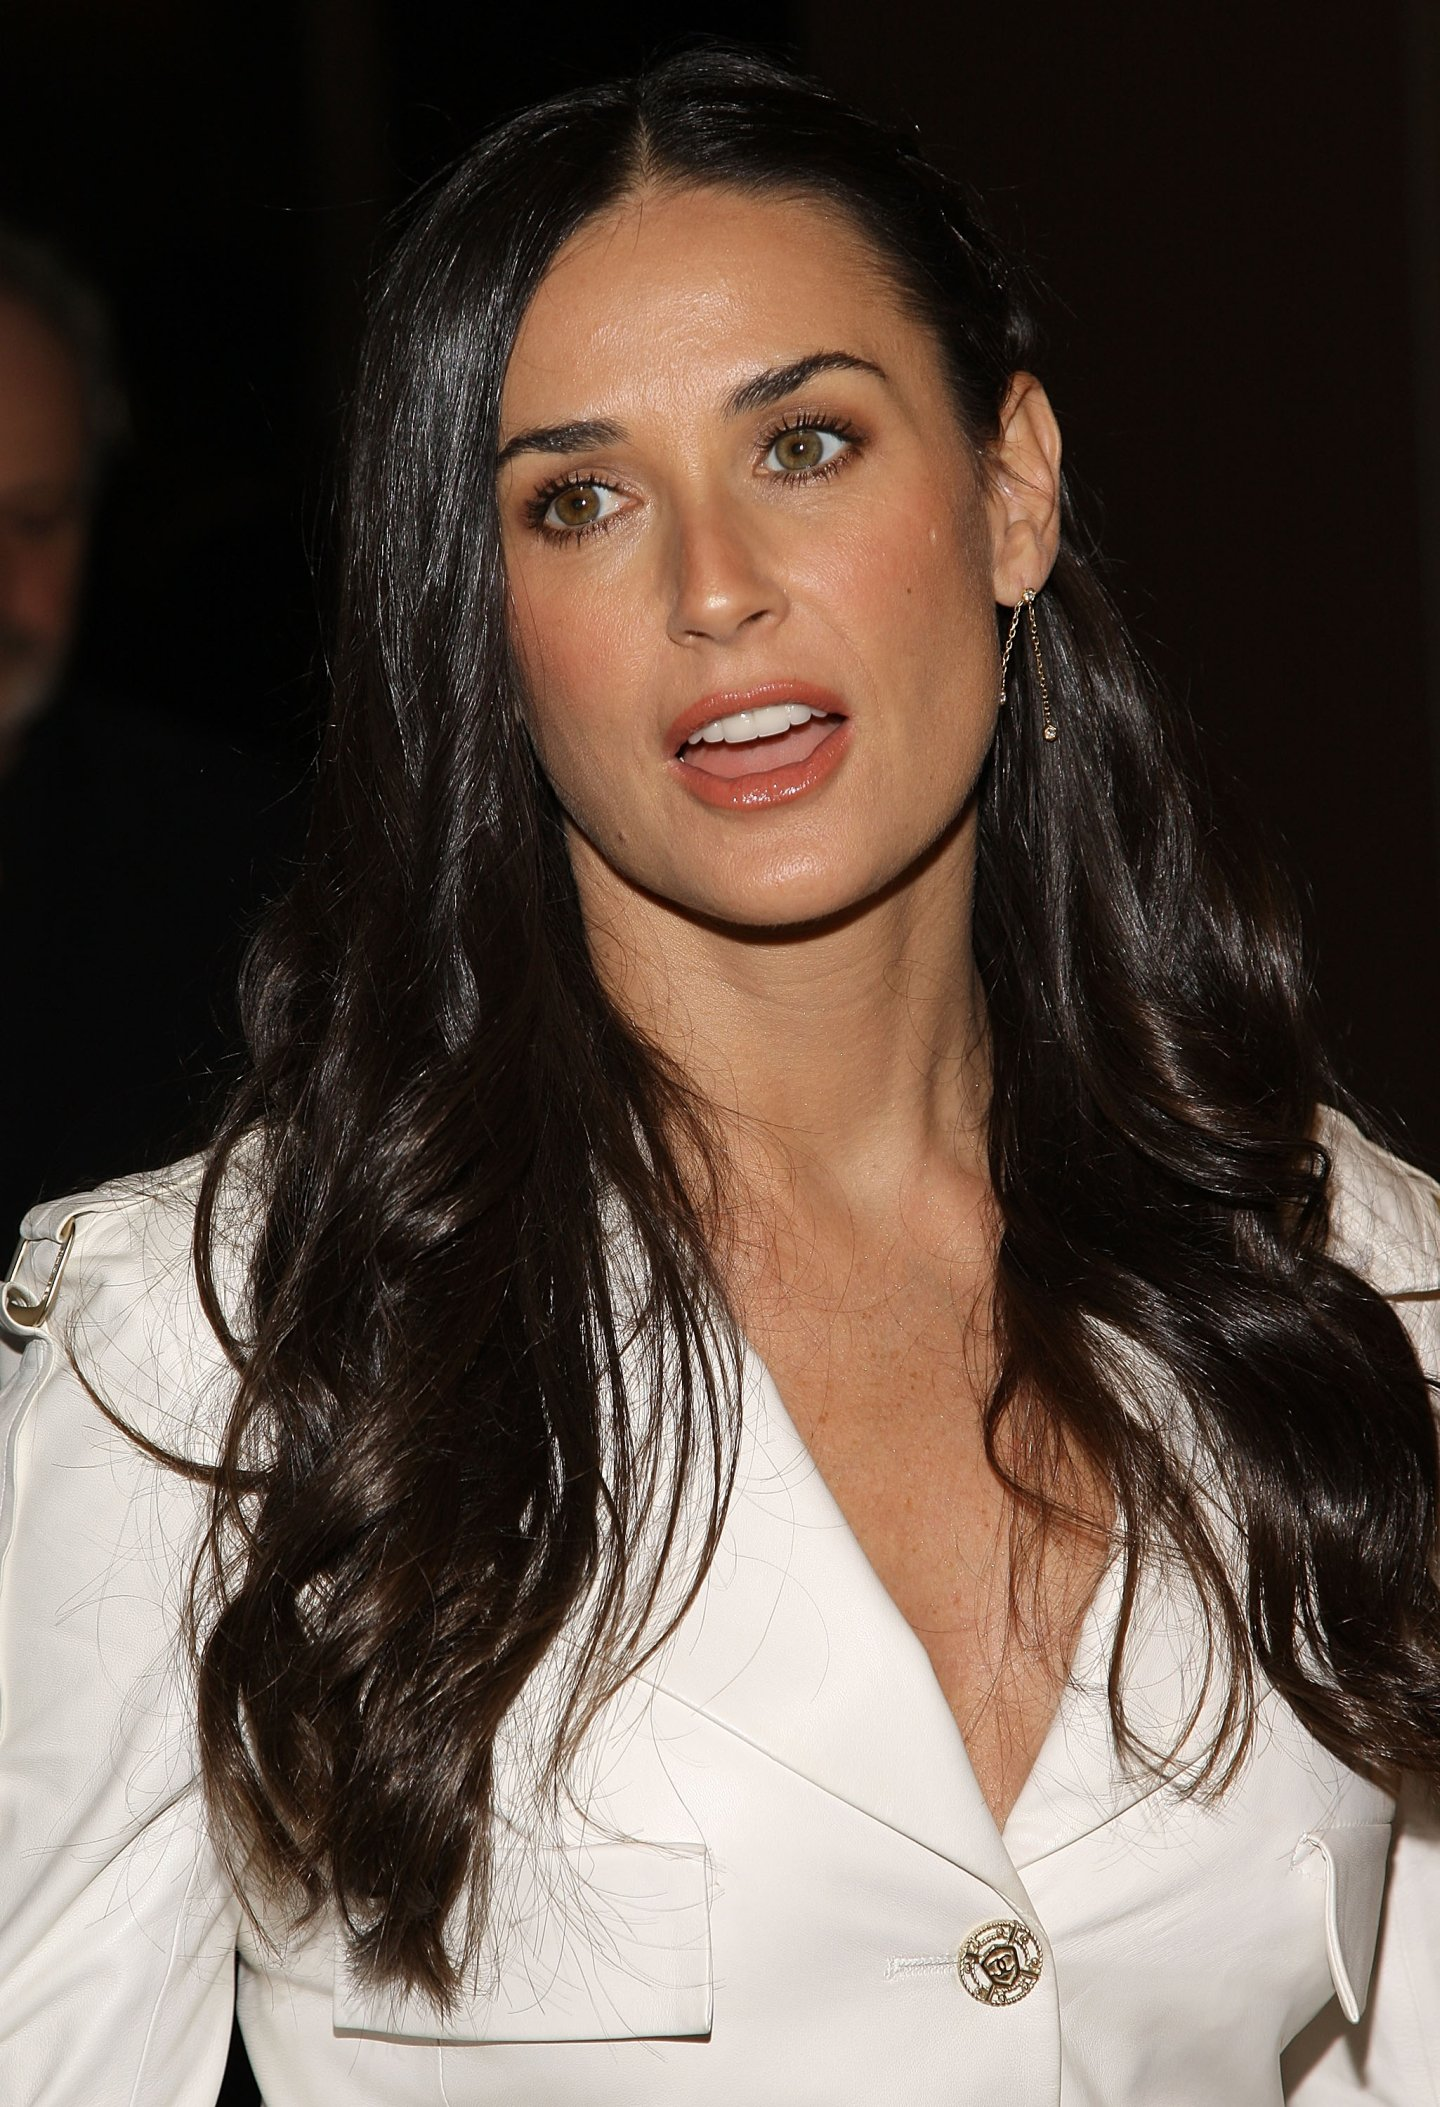 http://img.myconfinedspace.com/wp-content/uploads/2009/05/demi-moore-flawless-screening-in-new-york-city.jpg